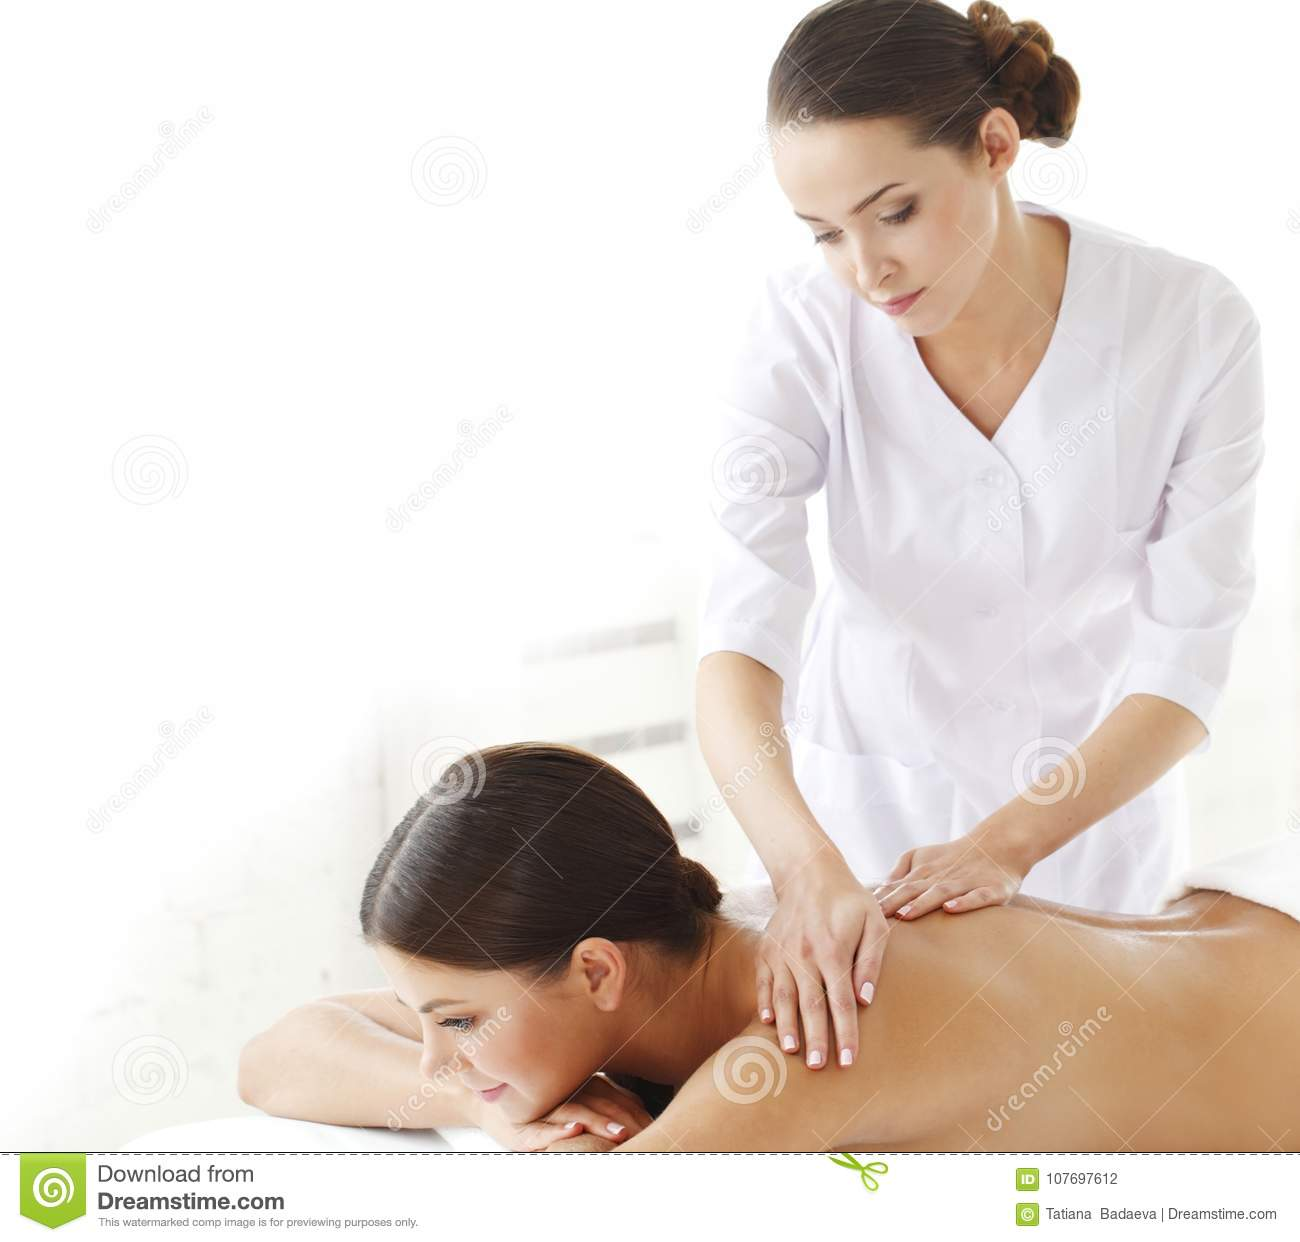 naked women getting massages